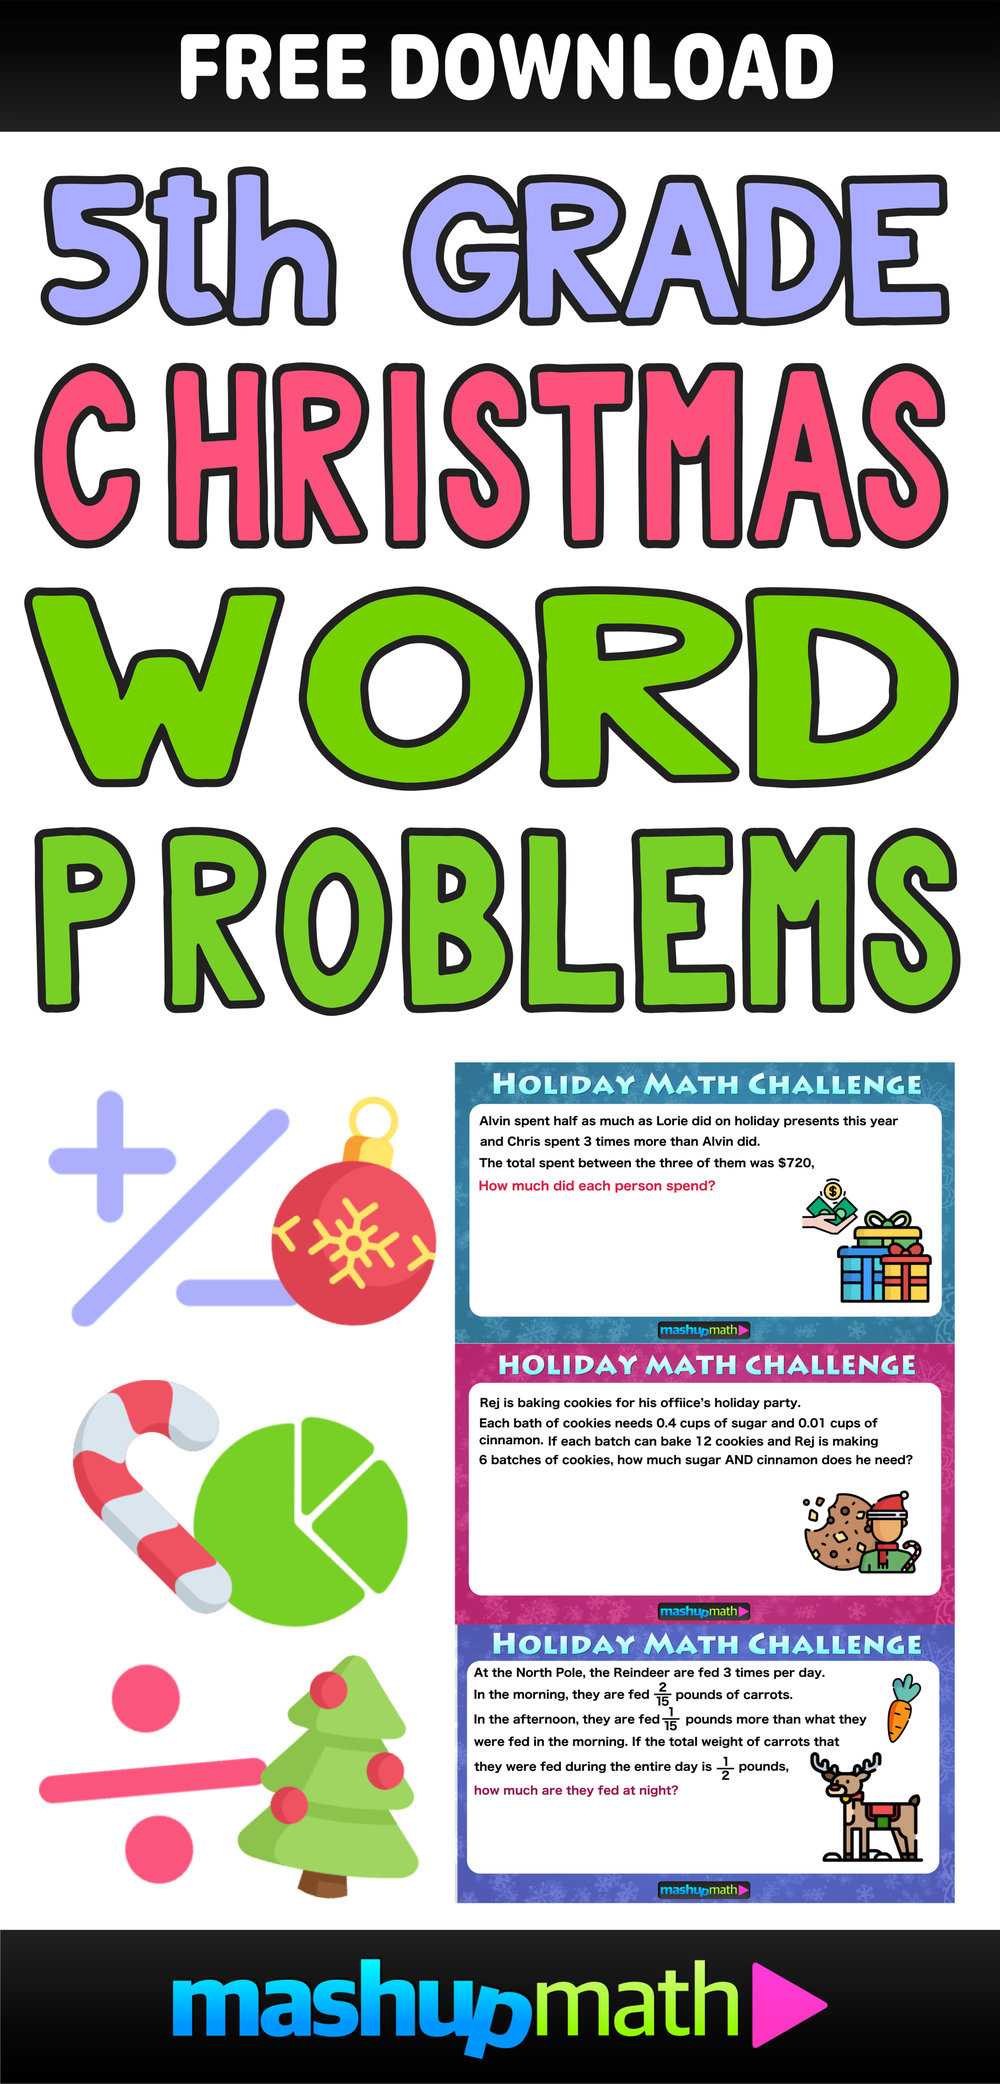 Christmas Math Worksheets 5th Grade the Best Math Christmas Word Problems for 5th Grade — Mashup